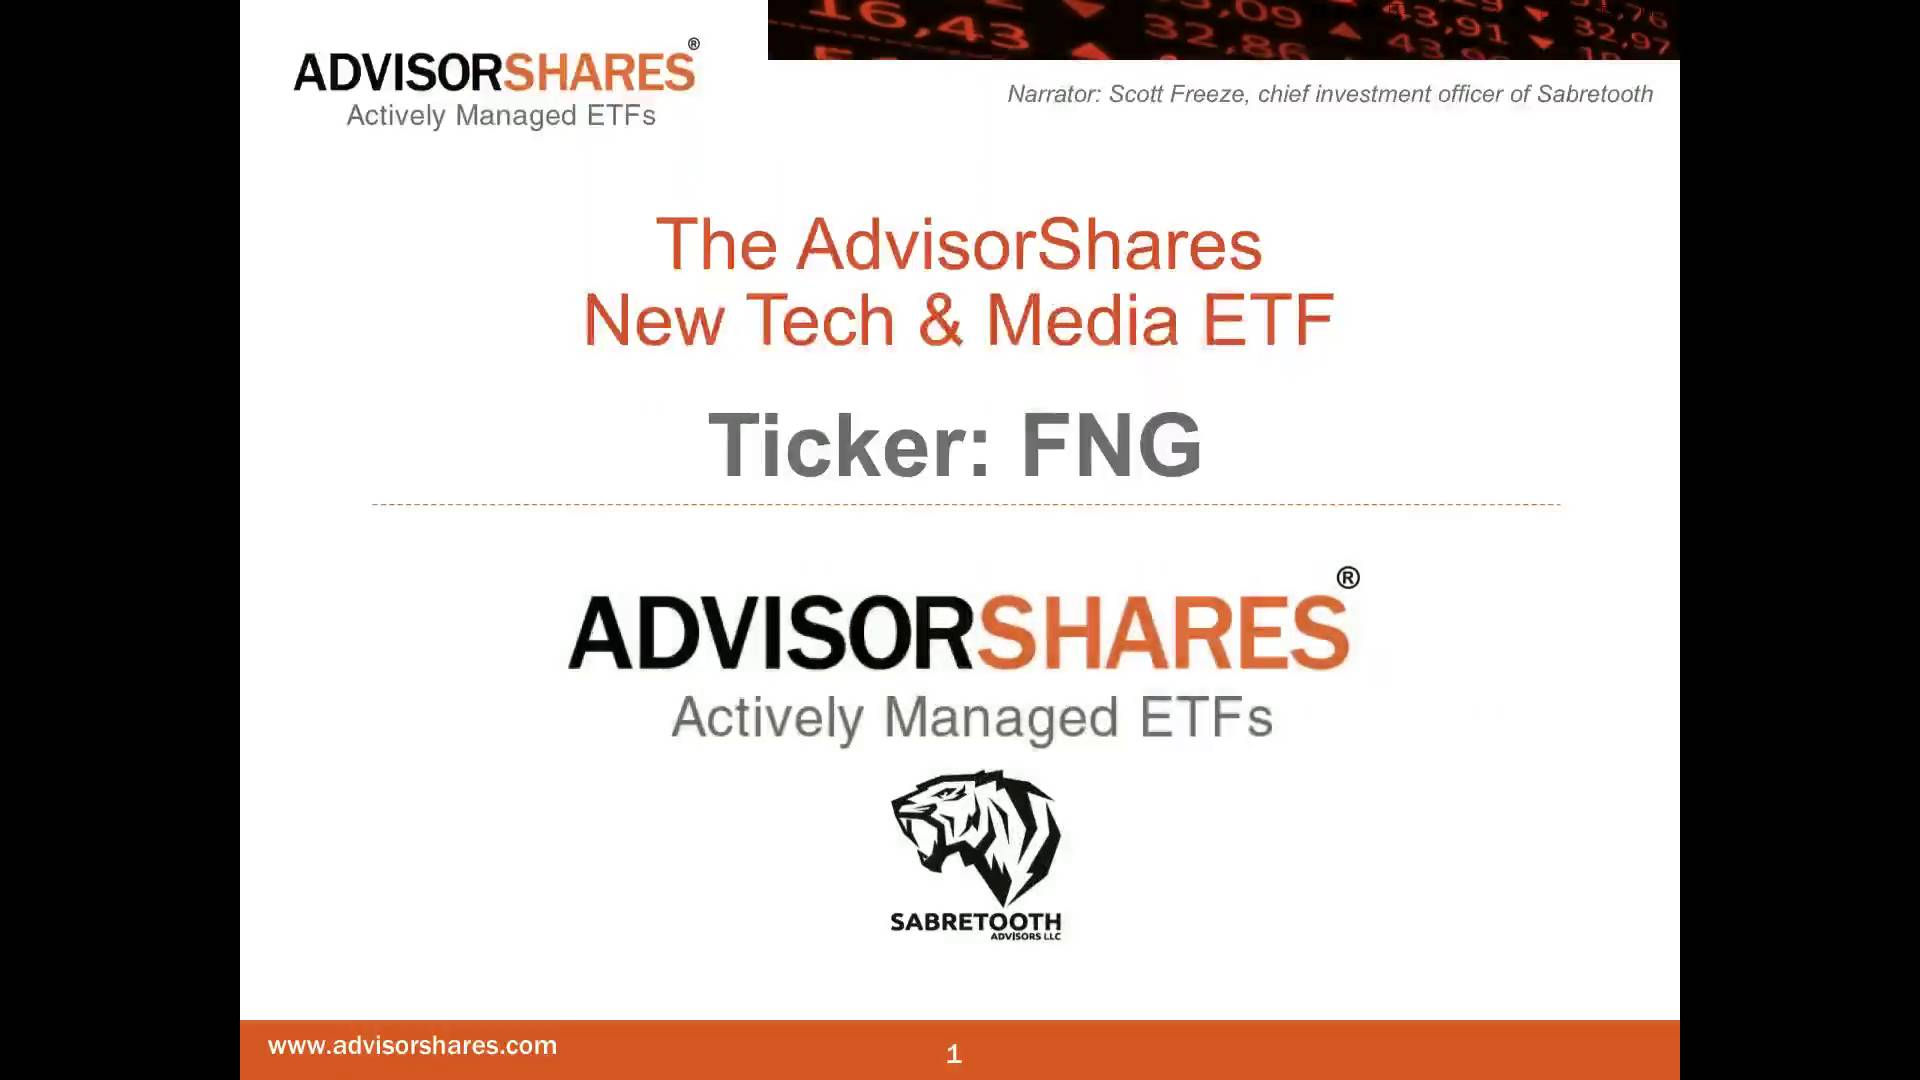 Fng new tech and media etf advisorshares fng new tech and media etf advisorshares buycottarizona Gallery